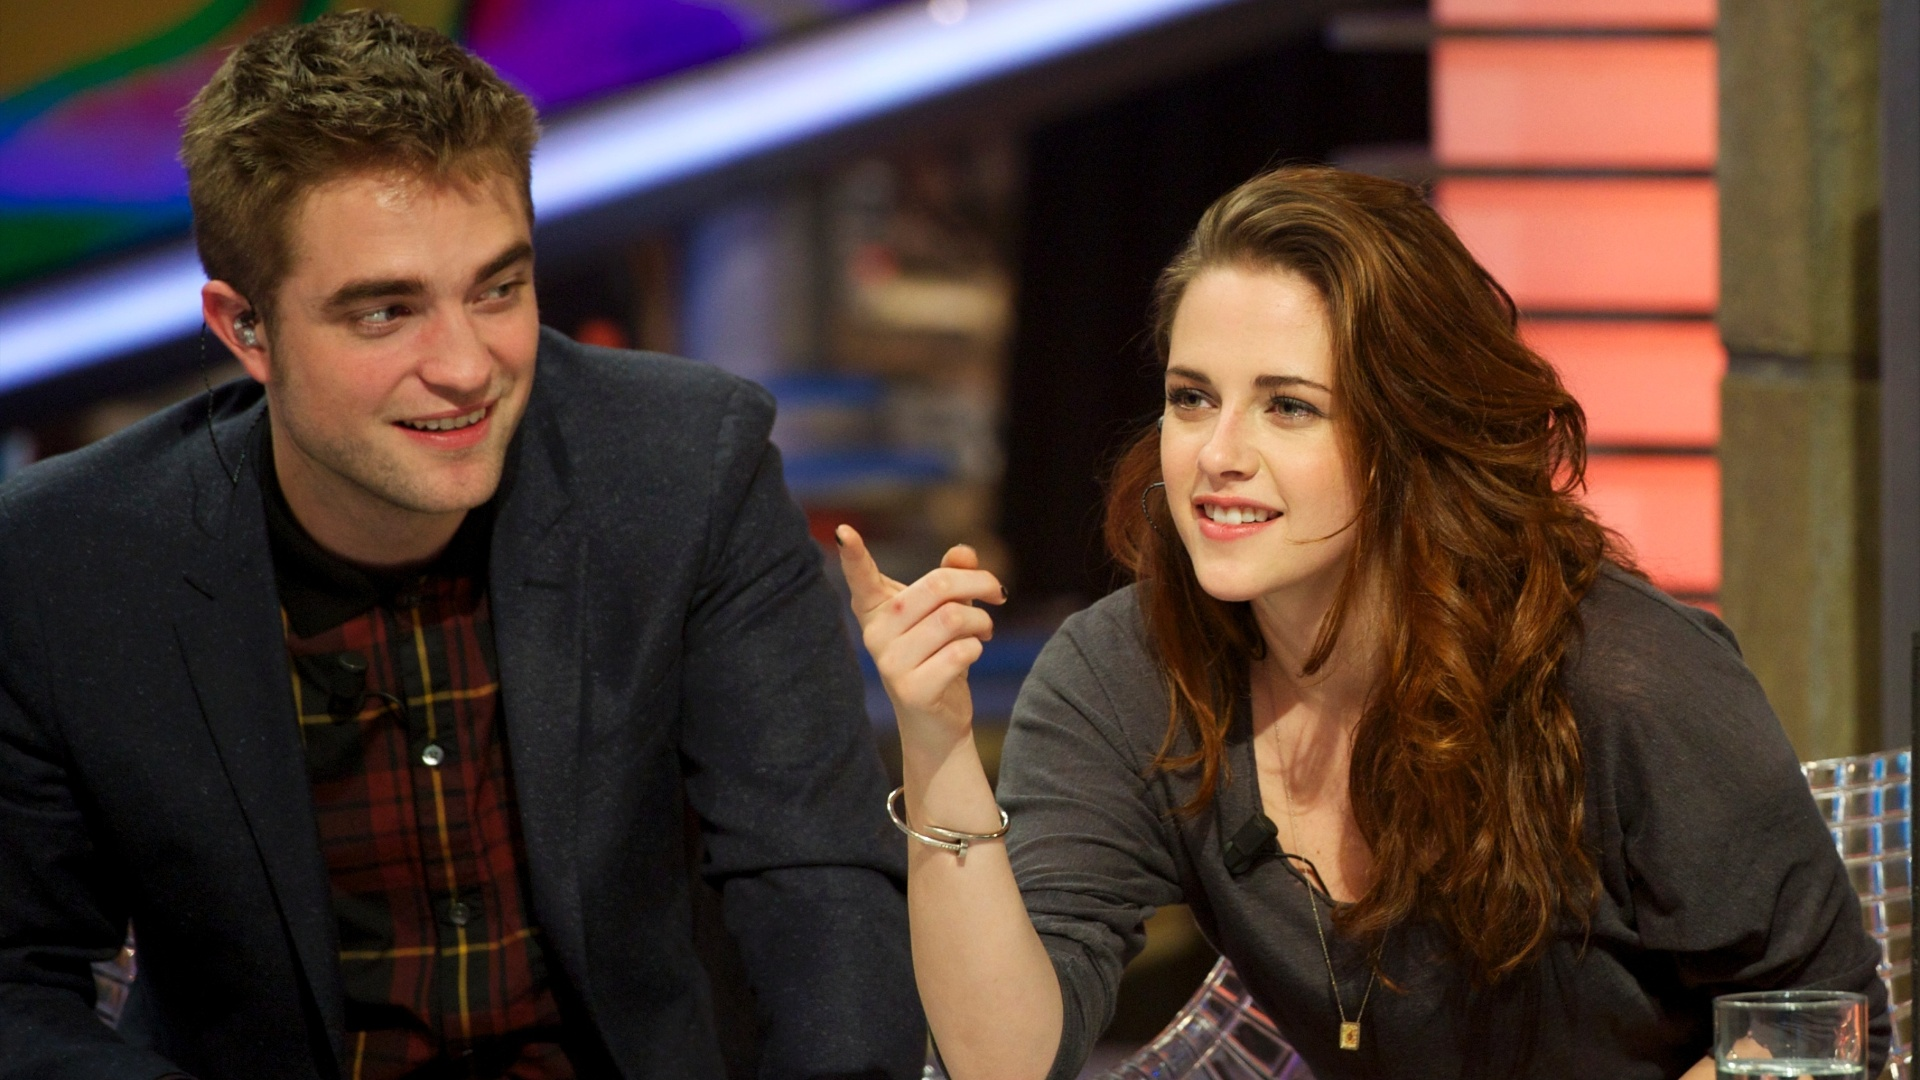 15.nov.2012 - Robert Pattinson e Kristen Stewart participam do programa